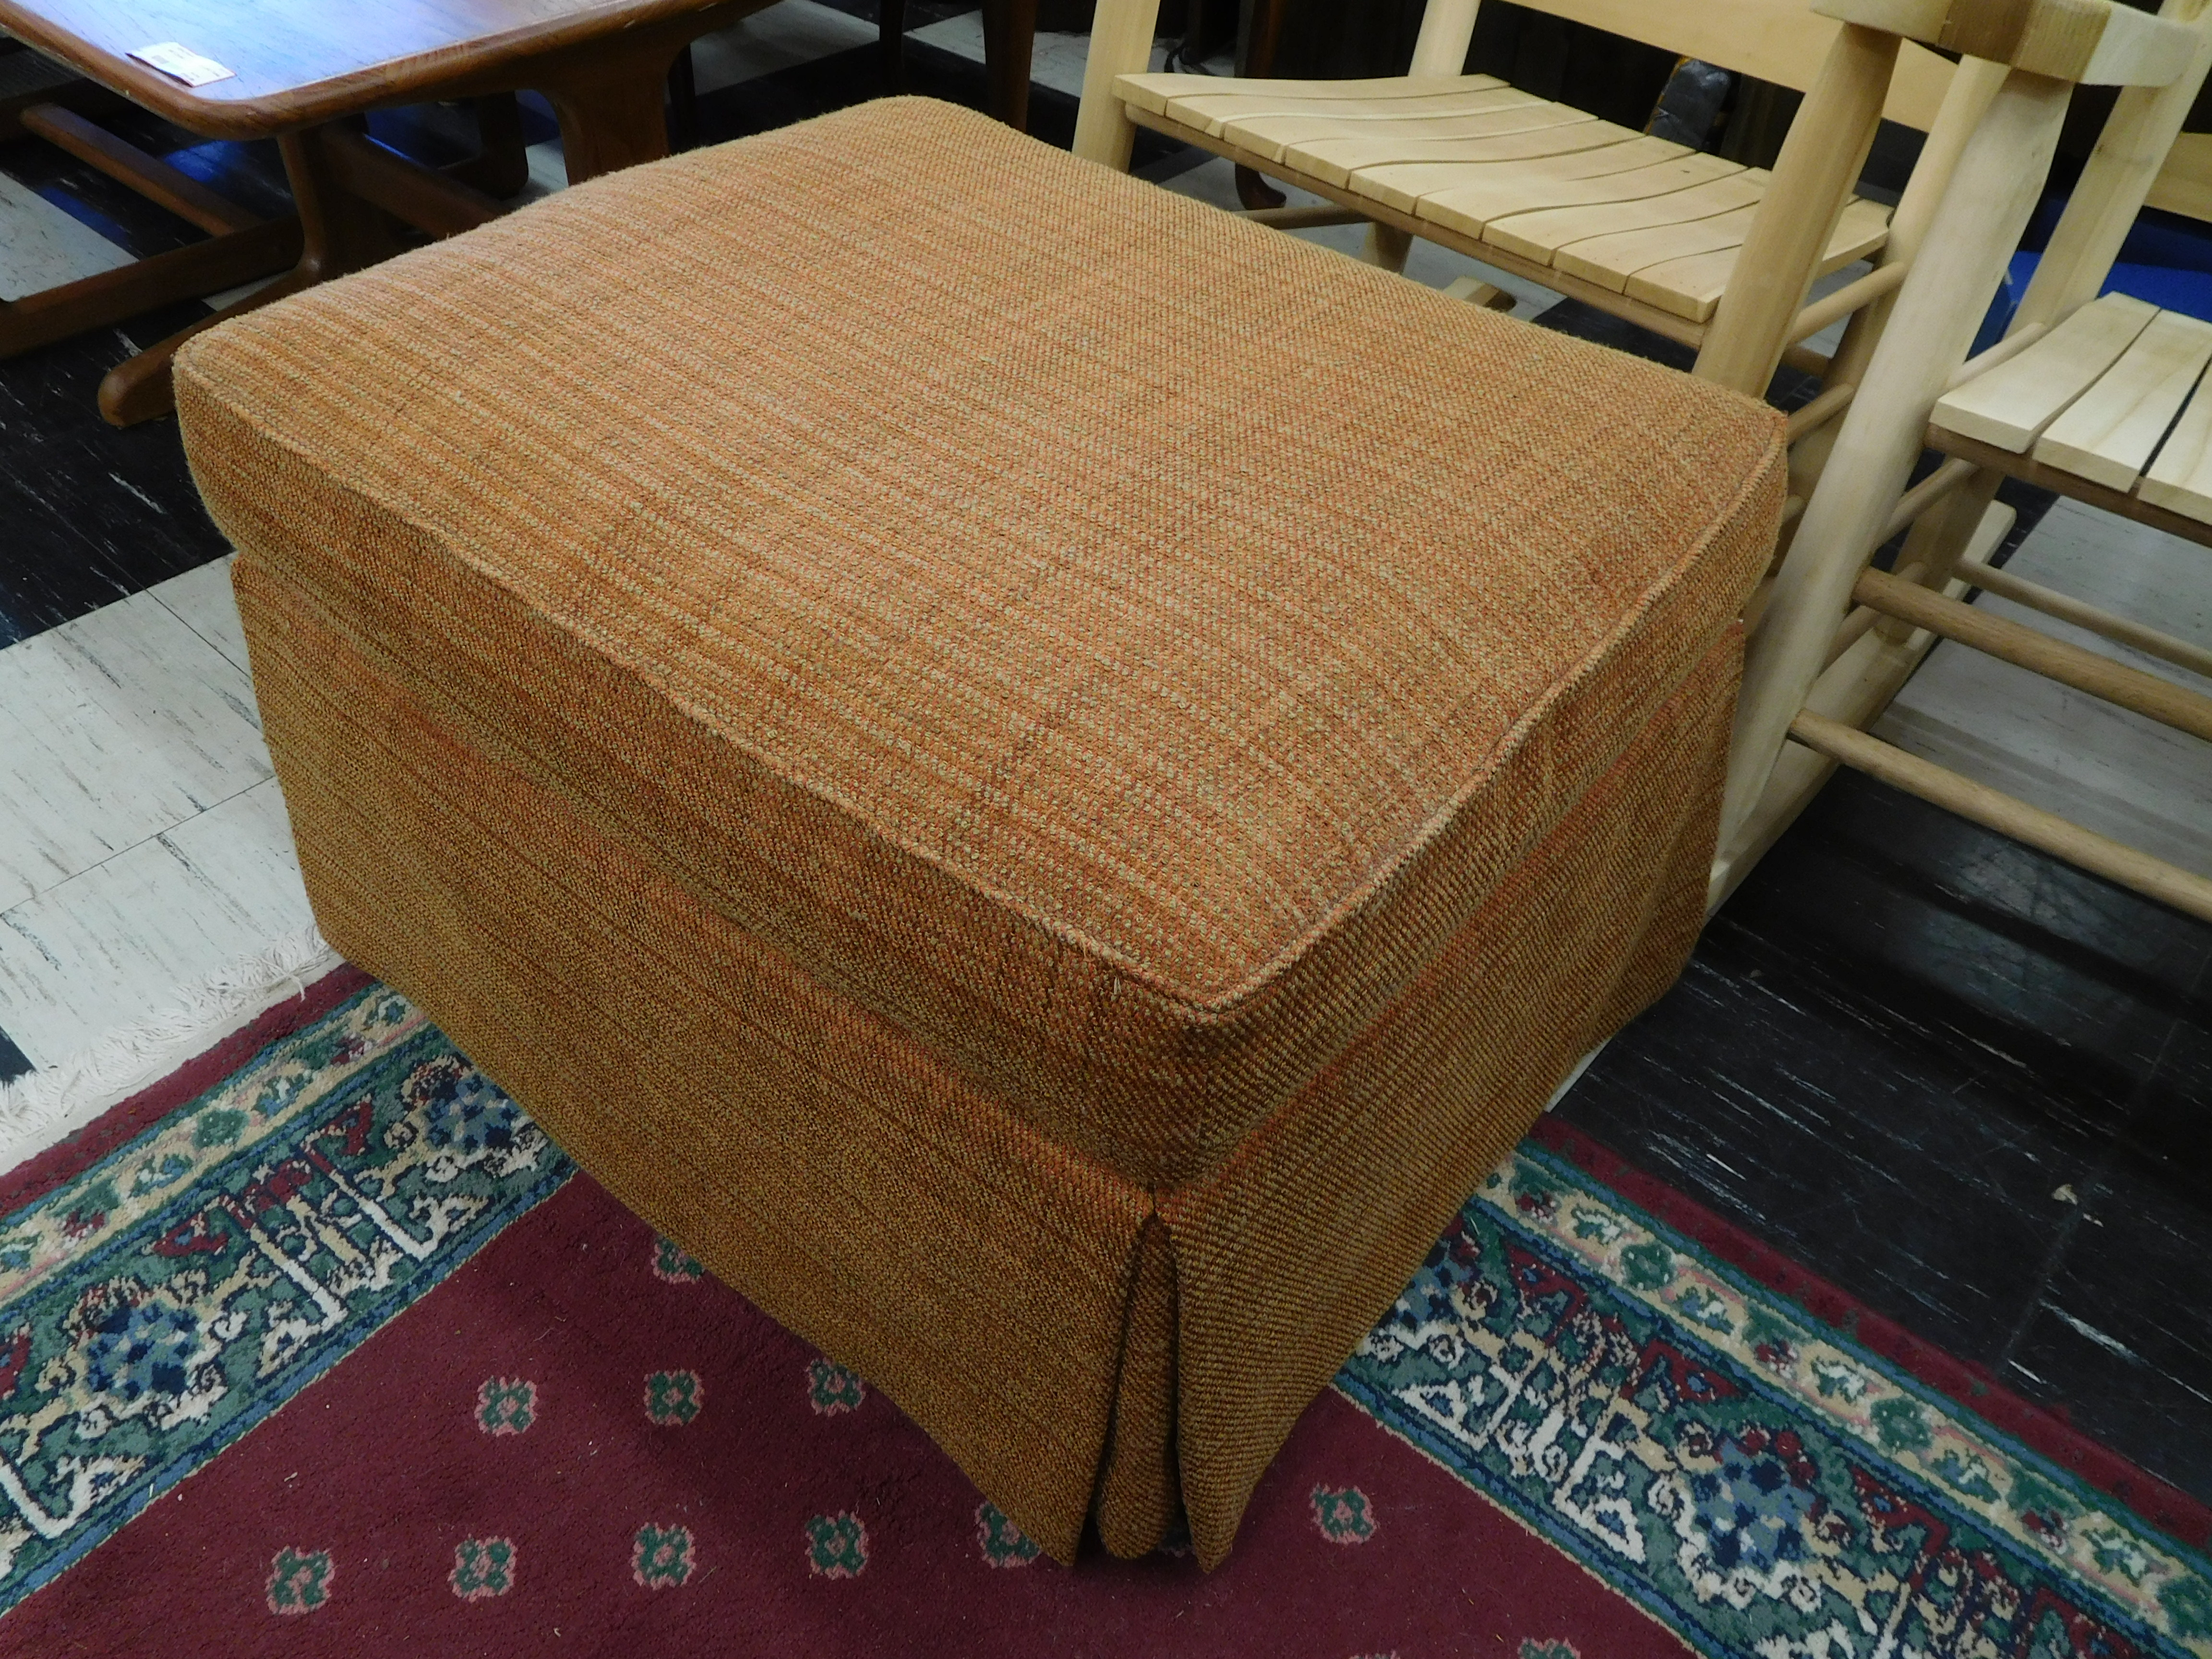 Ottoman with Orange and Gold Weave Upholstery by Baker Furniture